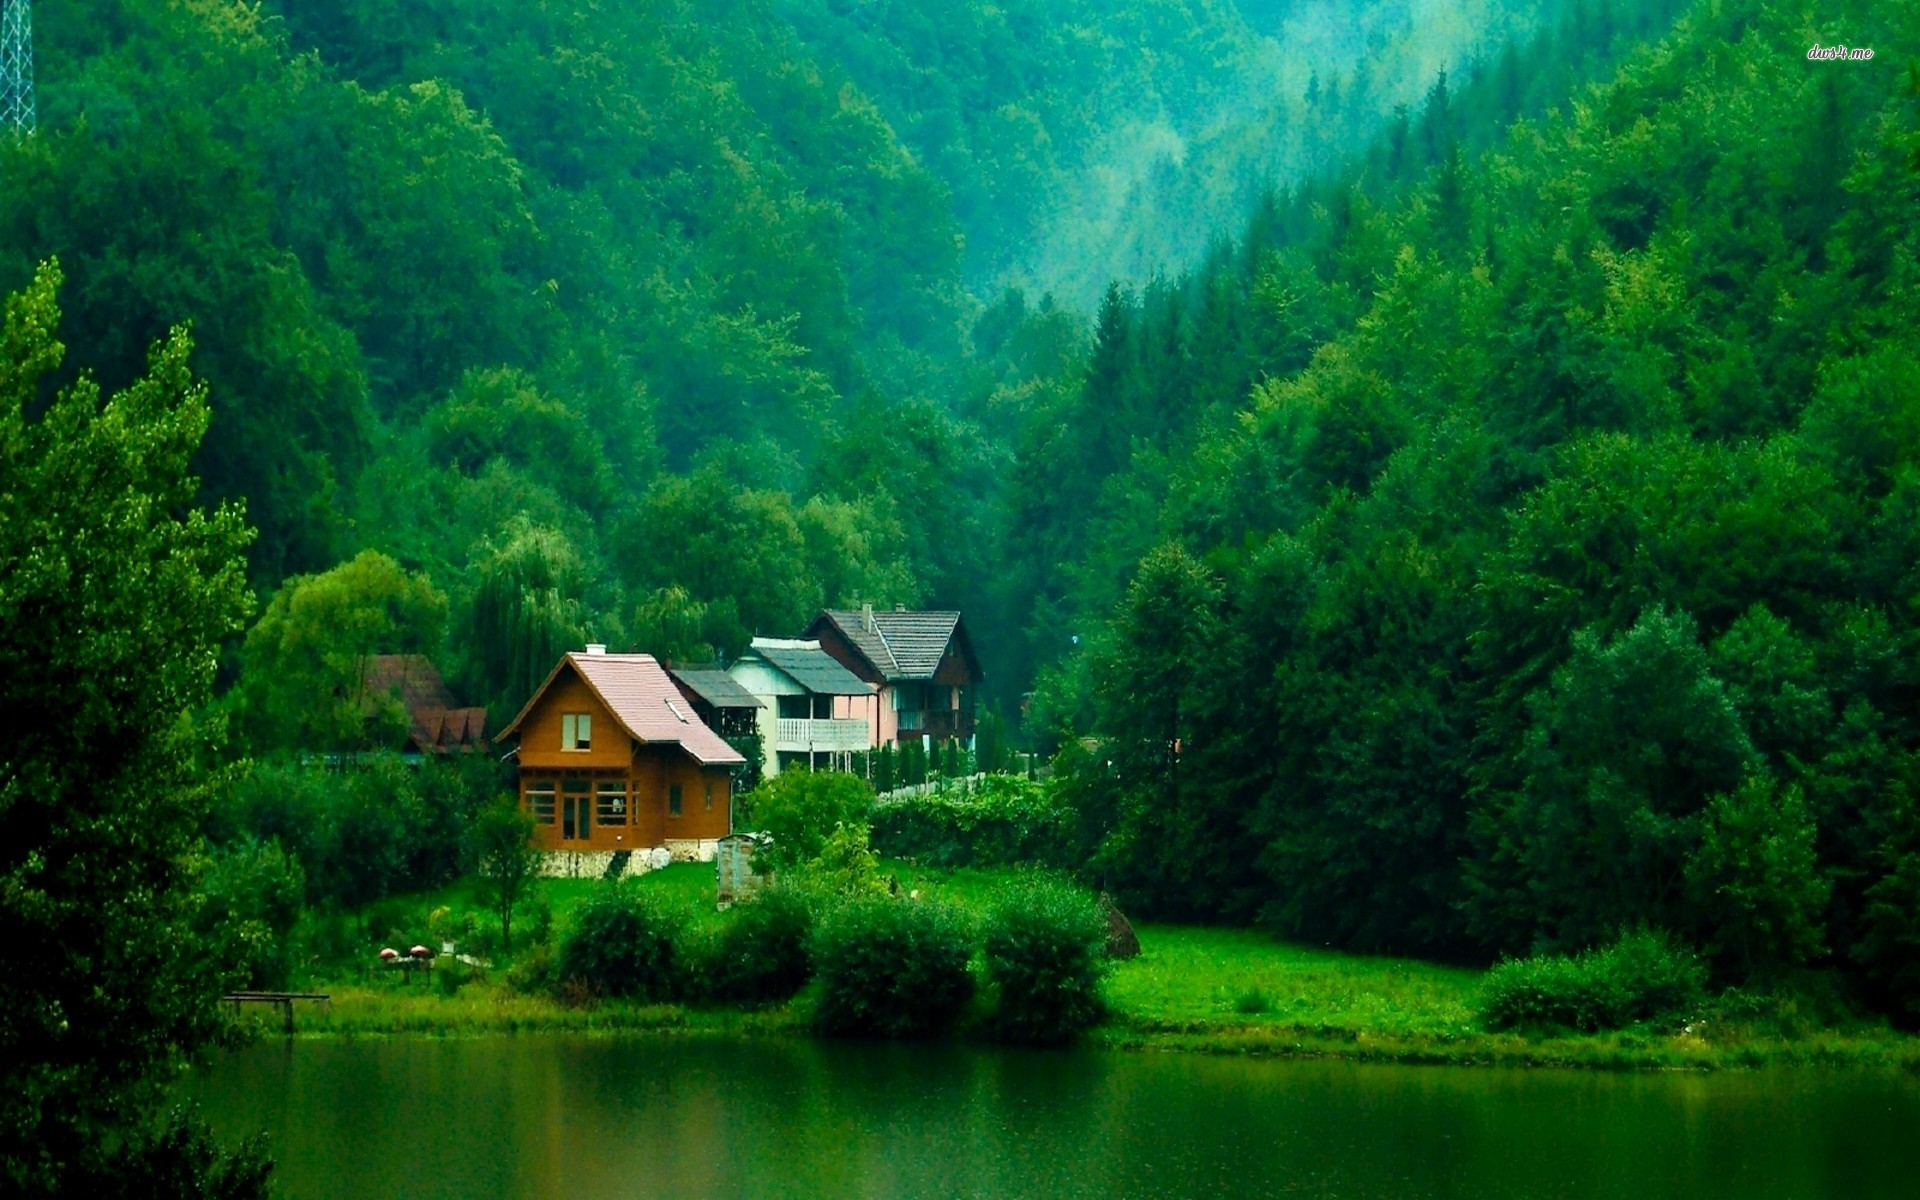 Cabins on the lakeside Transylvania wallpaper   World wallpapers 1920x1200